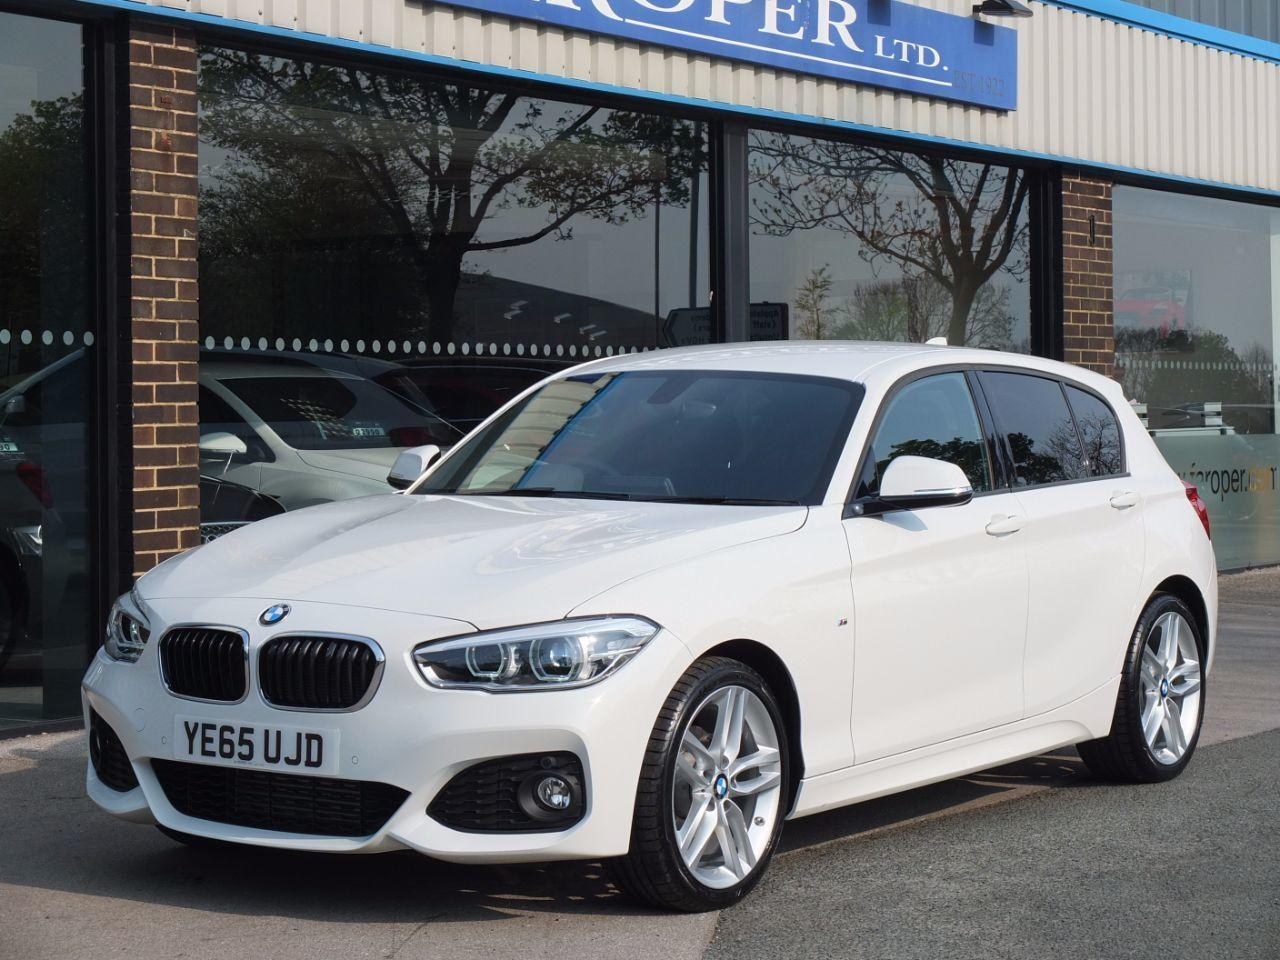 BMW 1 Series 2.0 118d M Sport 5 door Auto (Navigation) Hatchback Diesel Alpine WhiteBMW 1 Series 2.0 118d M Sport 5 door Auto (Navigation) Hatchback Diesel Alpine White at fa Roper Ltd Bradford